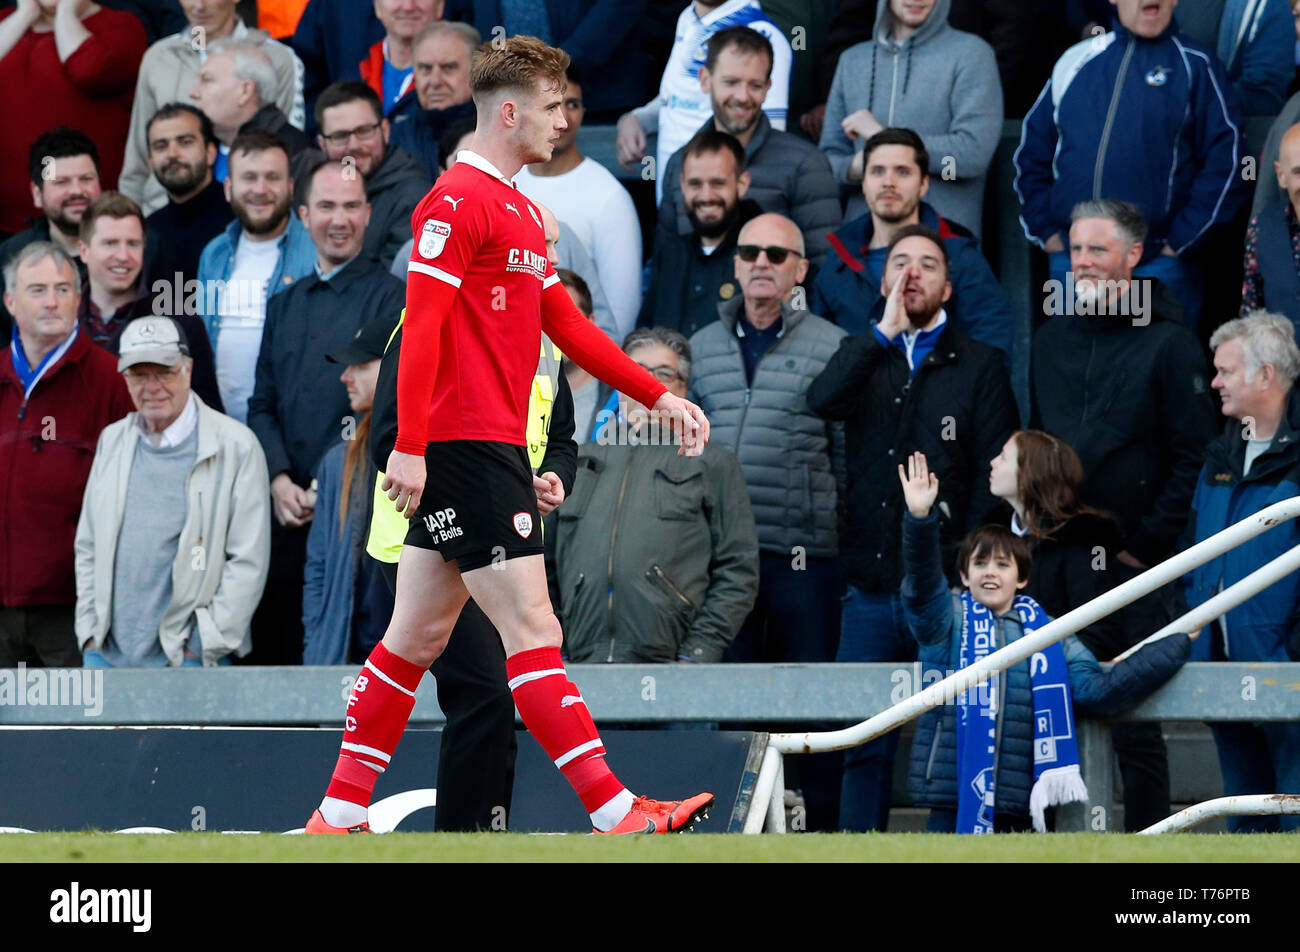 Barnsley's Liam Lindsay leaves the pitch after being sent off during the Sky Bet League One match against Bristol Rovers at Memorial Stadium, Bristol. - Stock Image